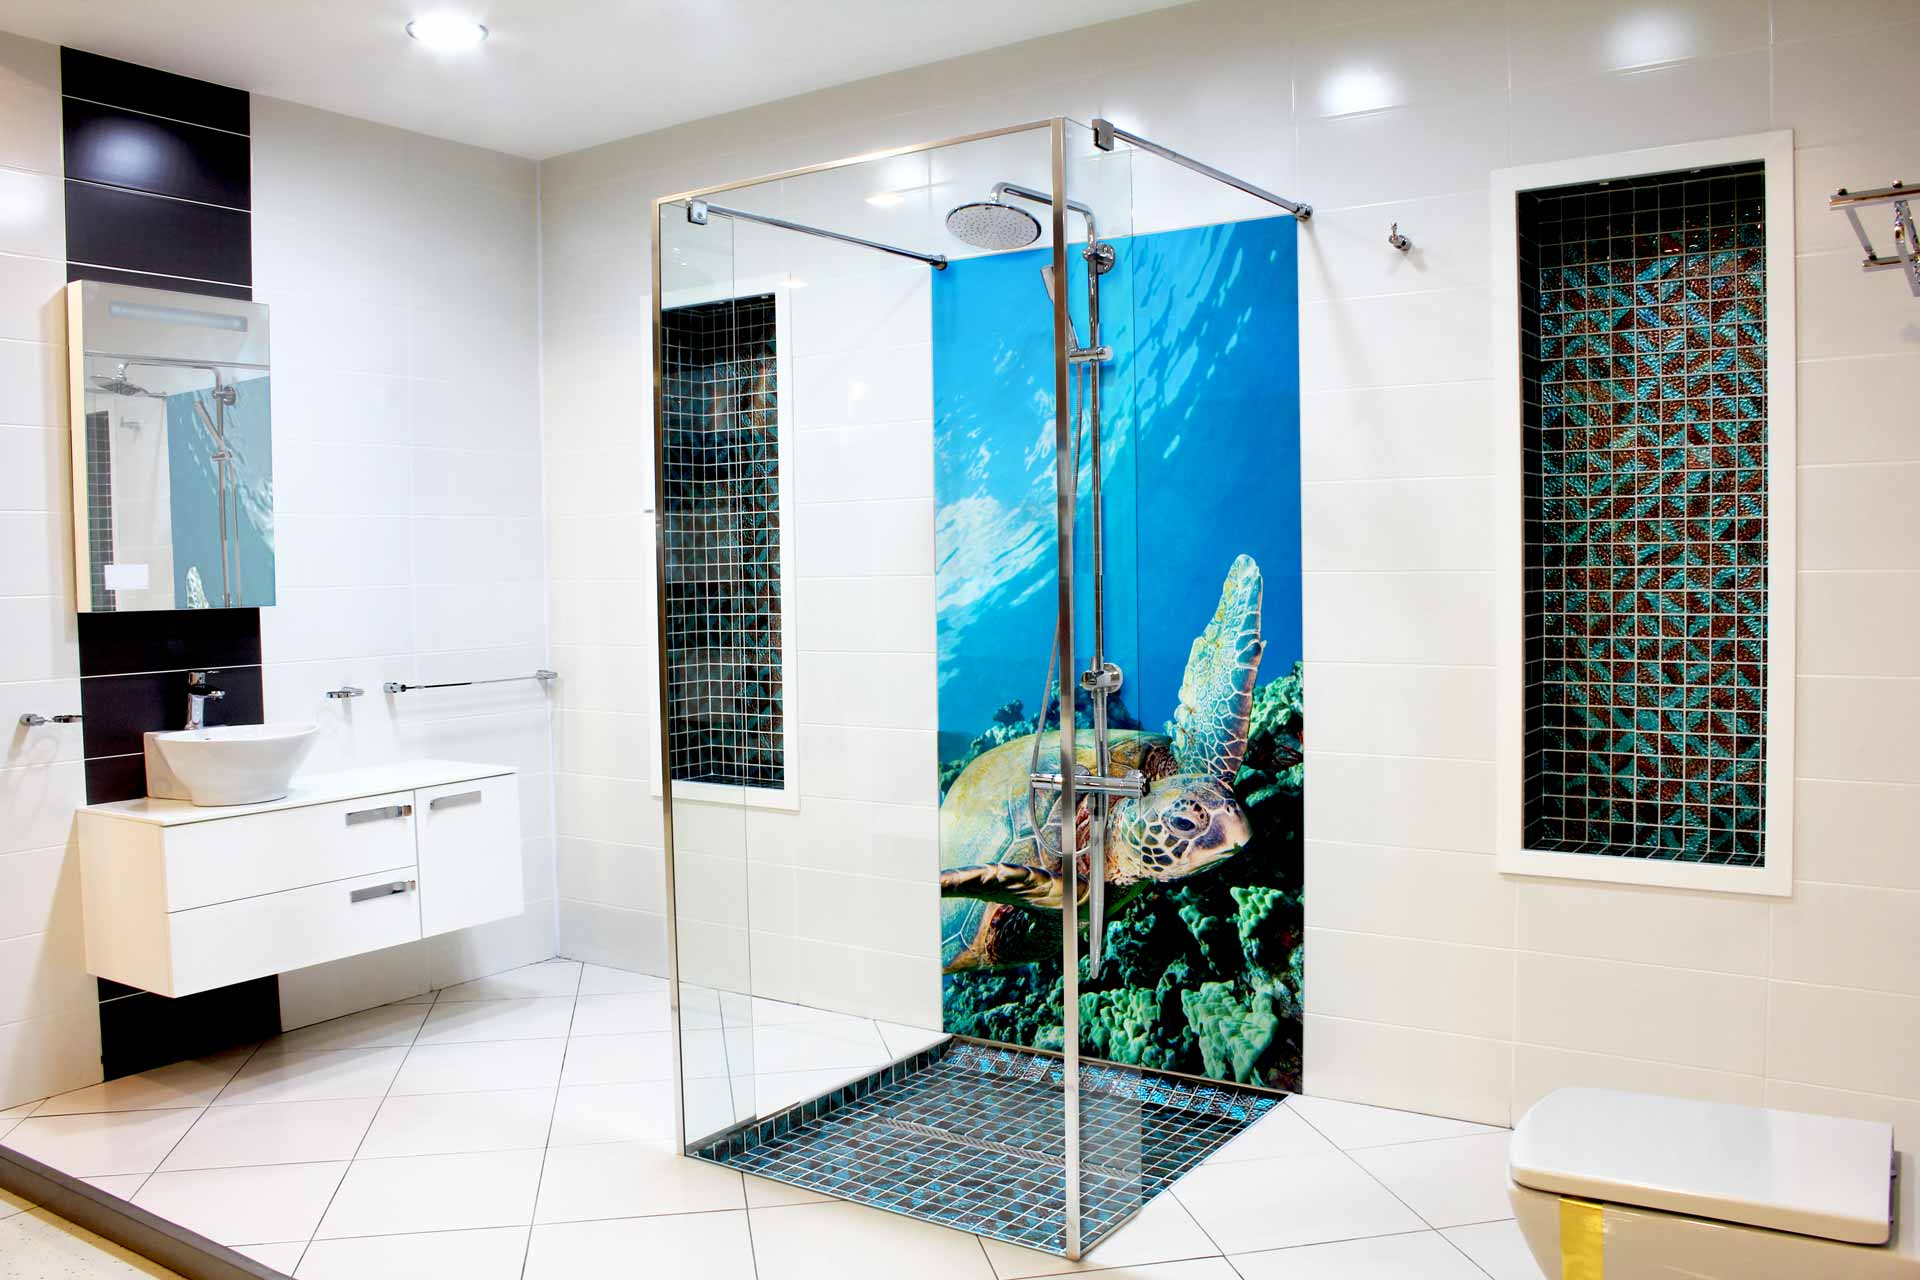 Giant Turtle bathroom tiles